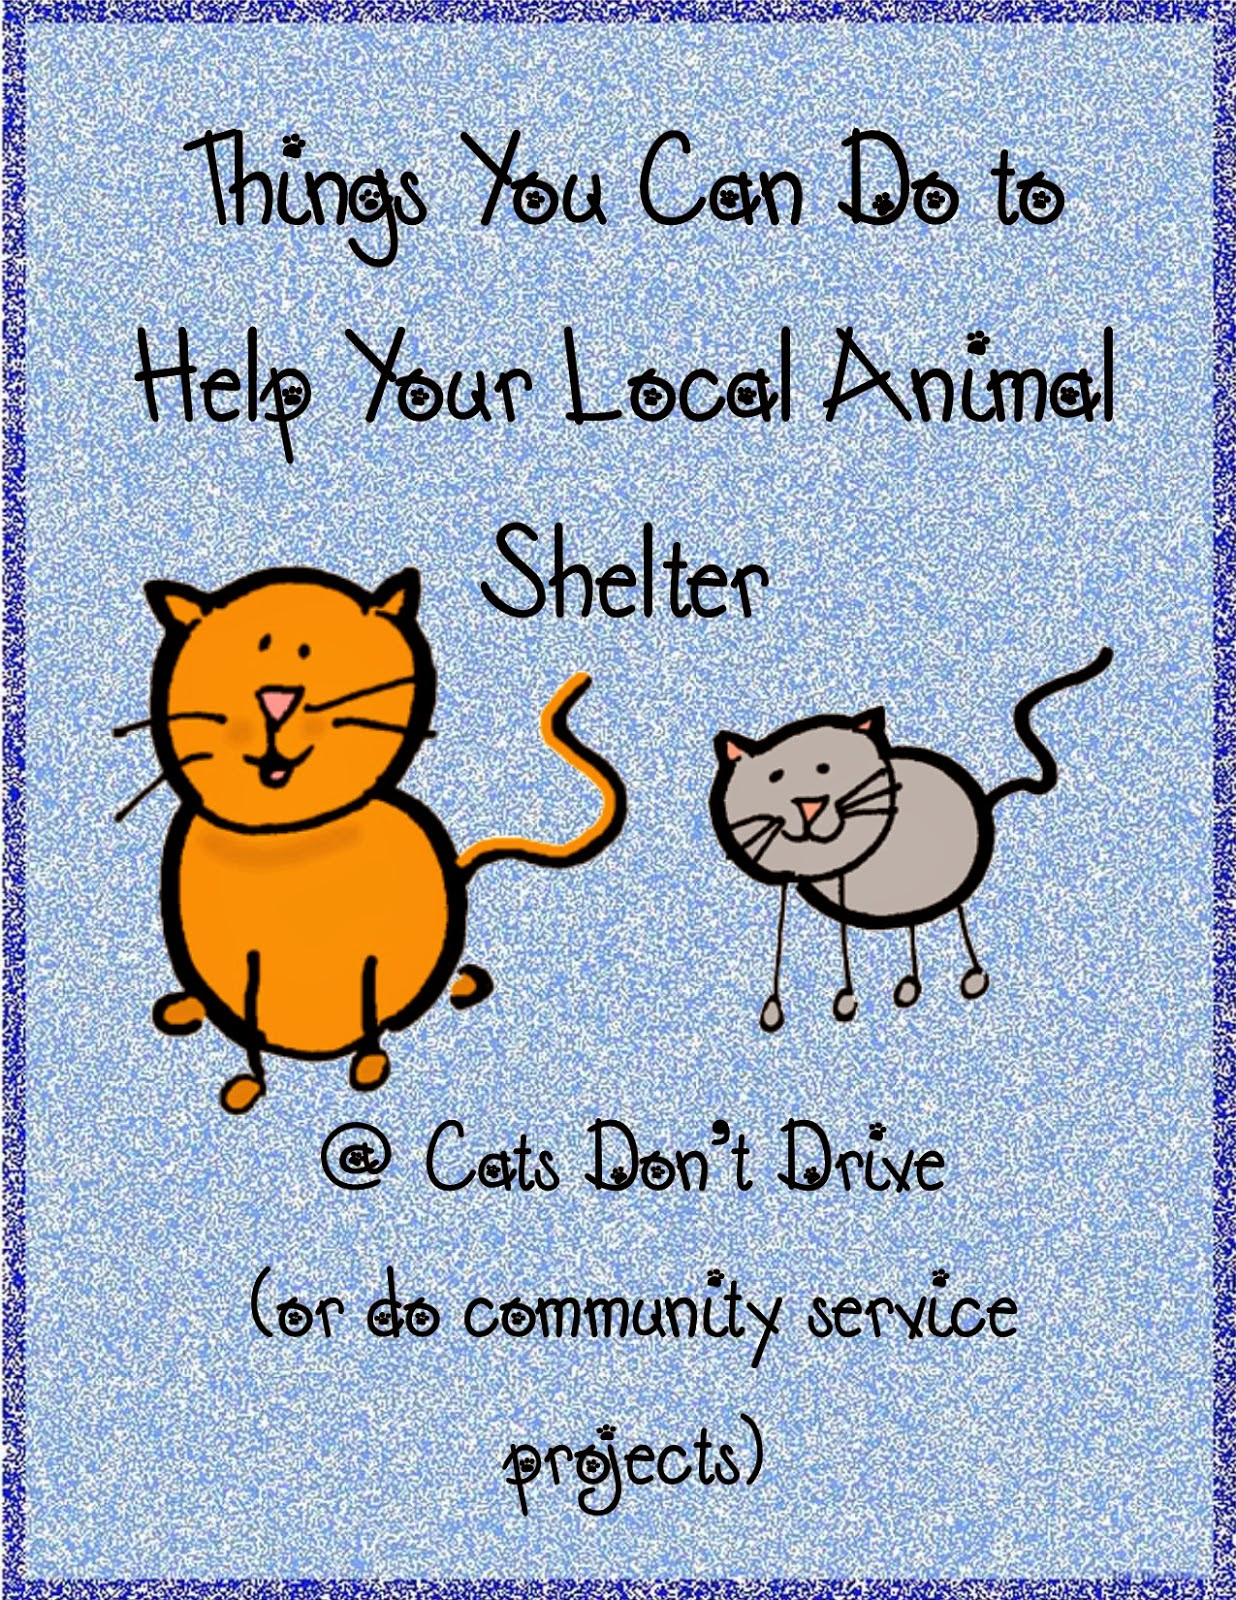 Things your can do to help your local animal shelter